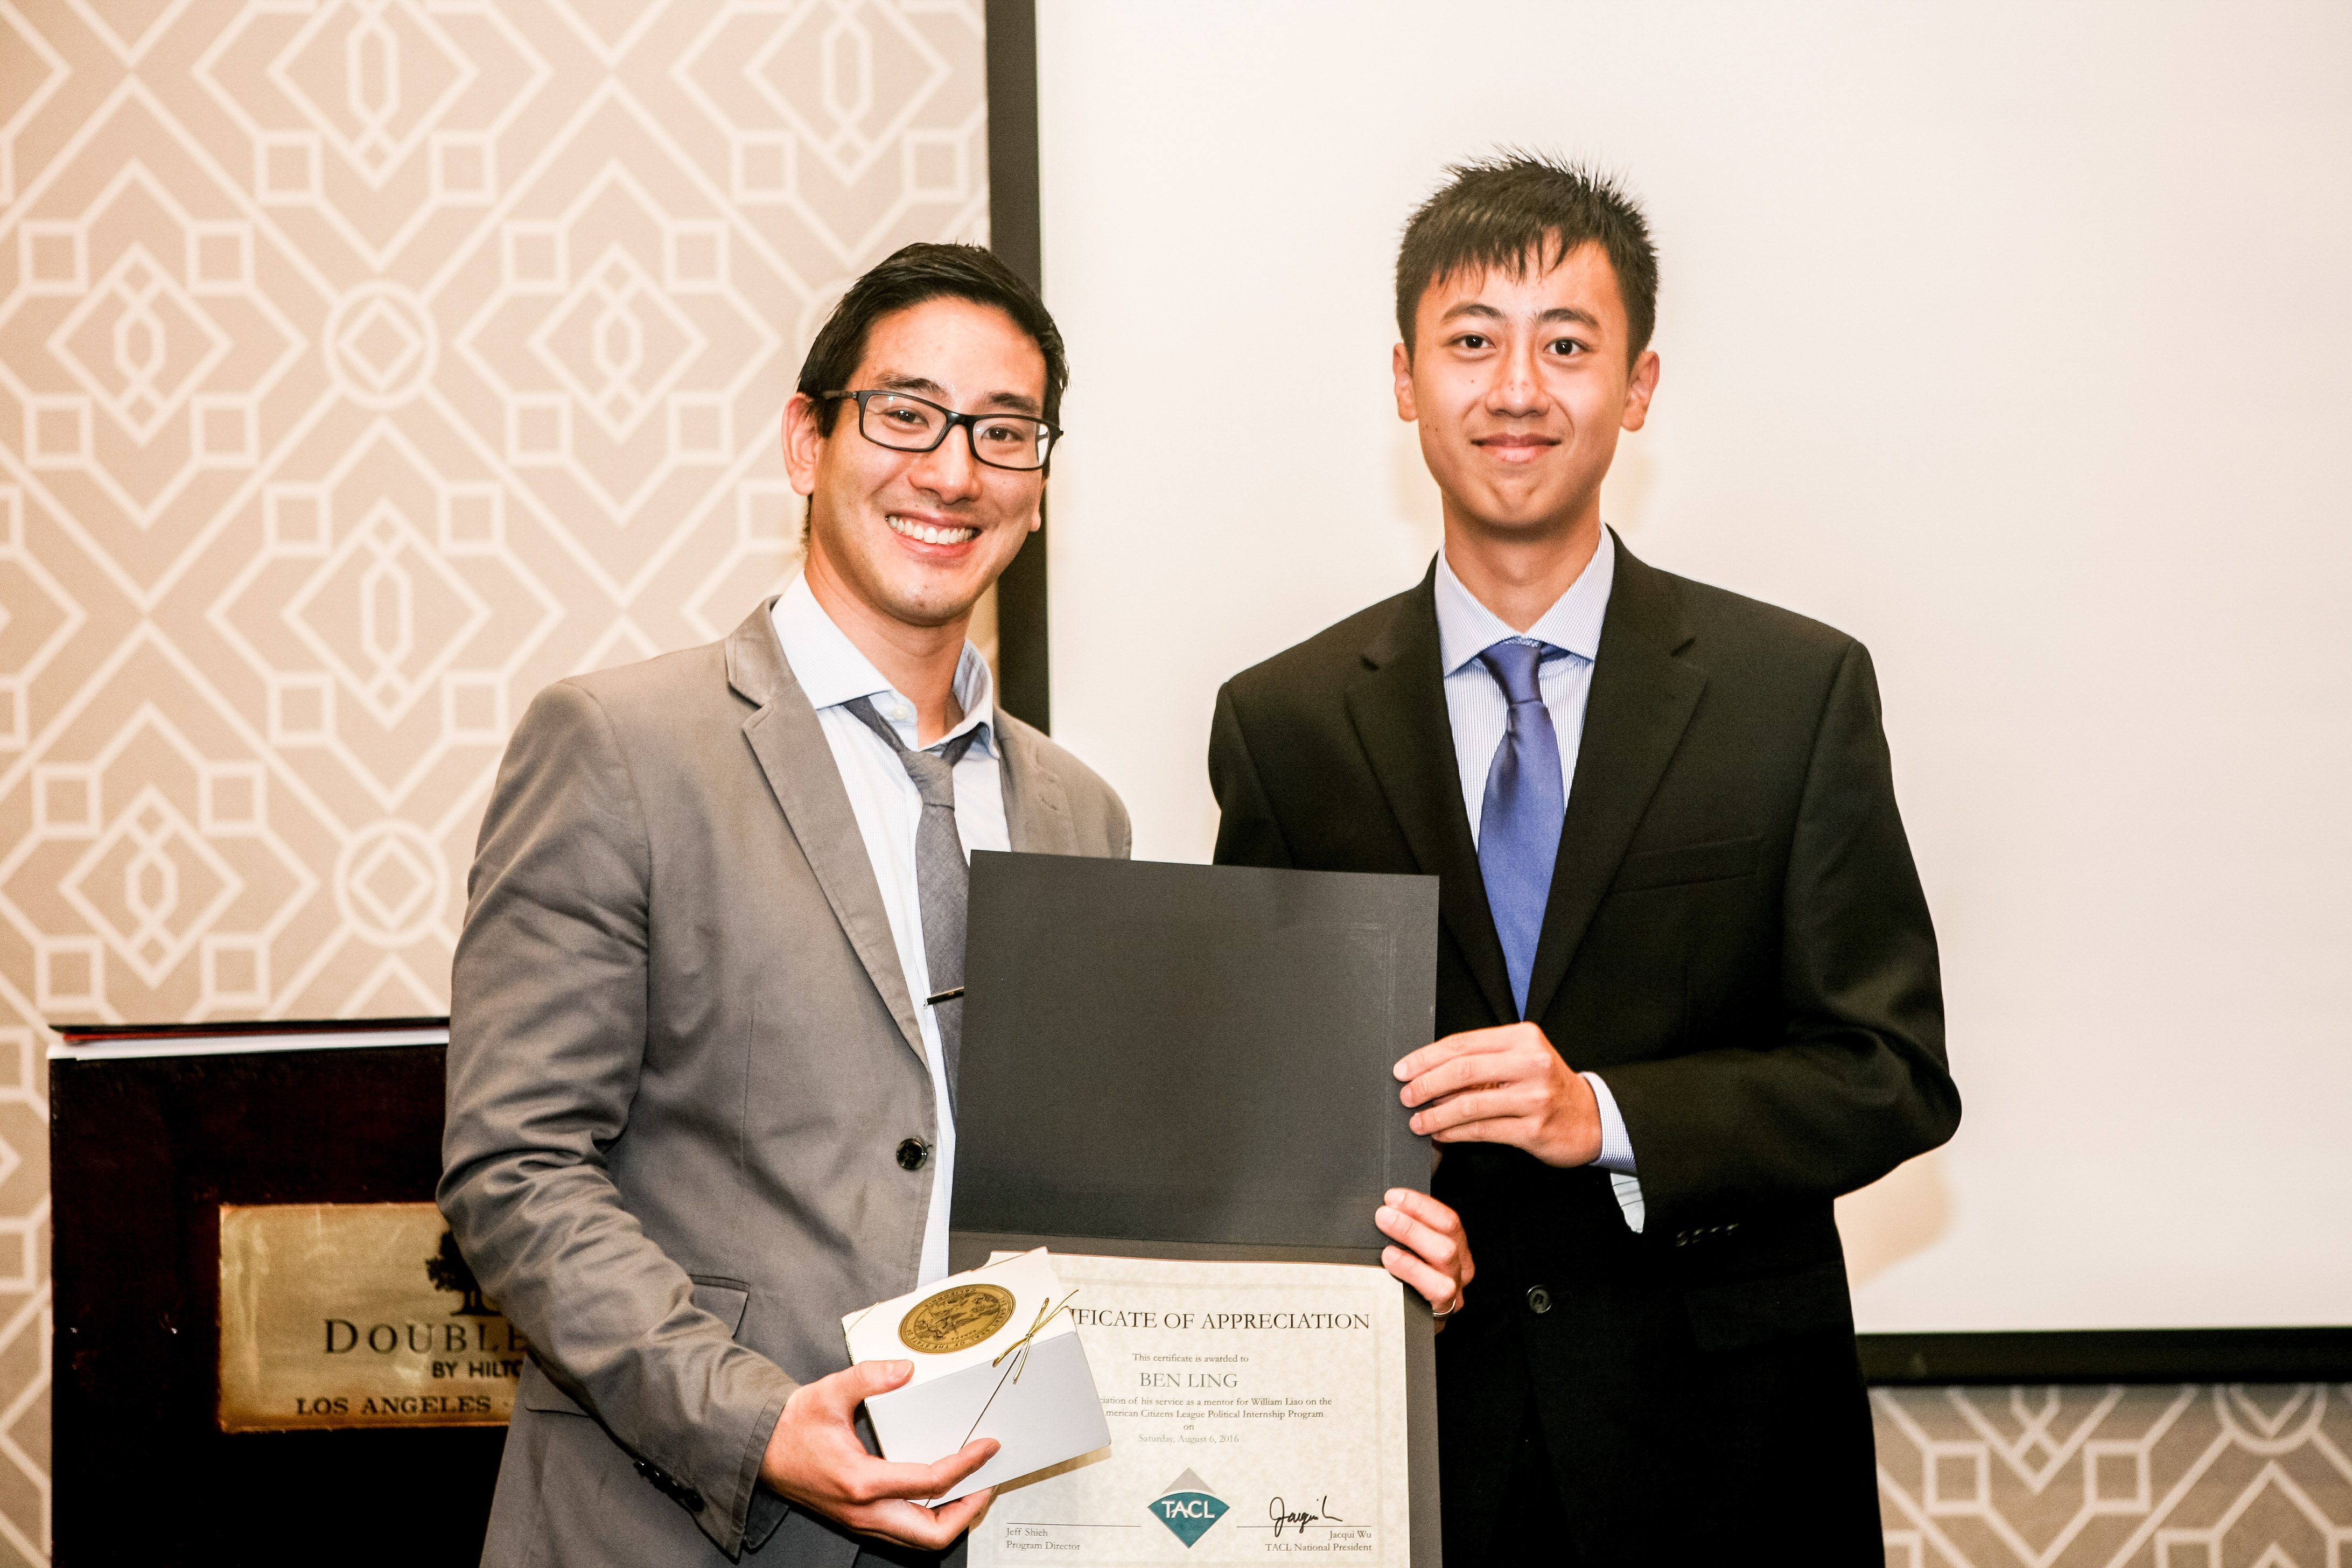 William with his mentor, Ben Ling, former TACL President.